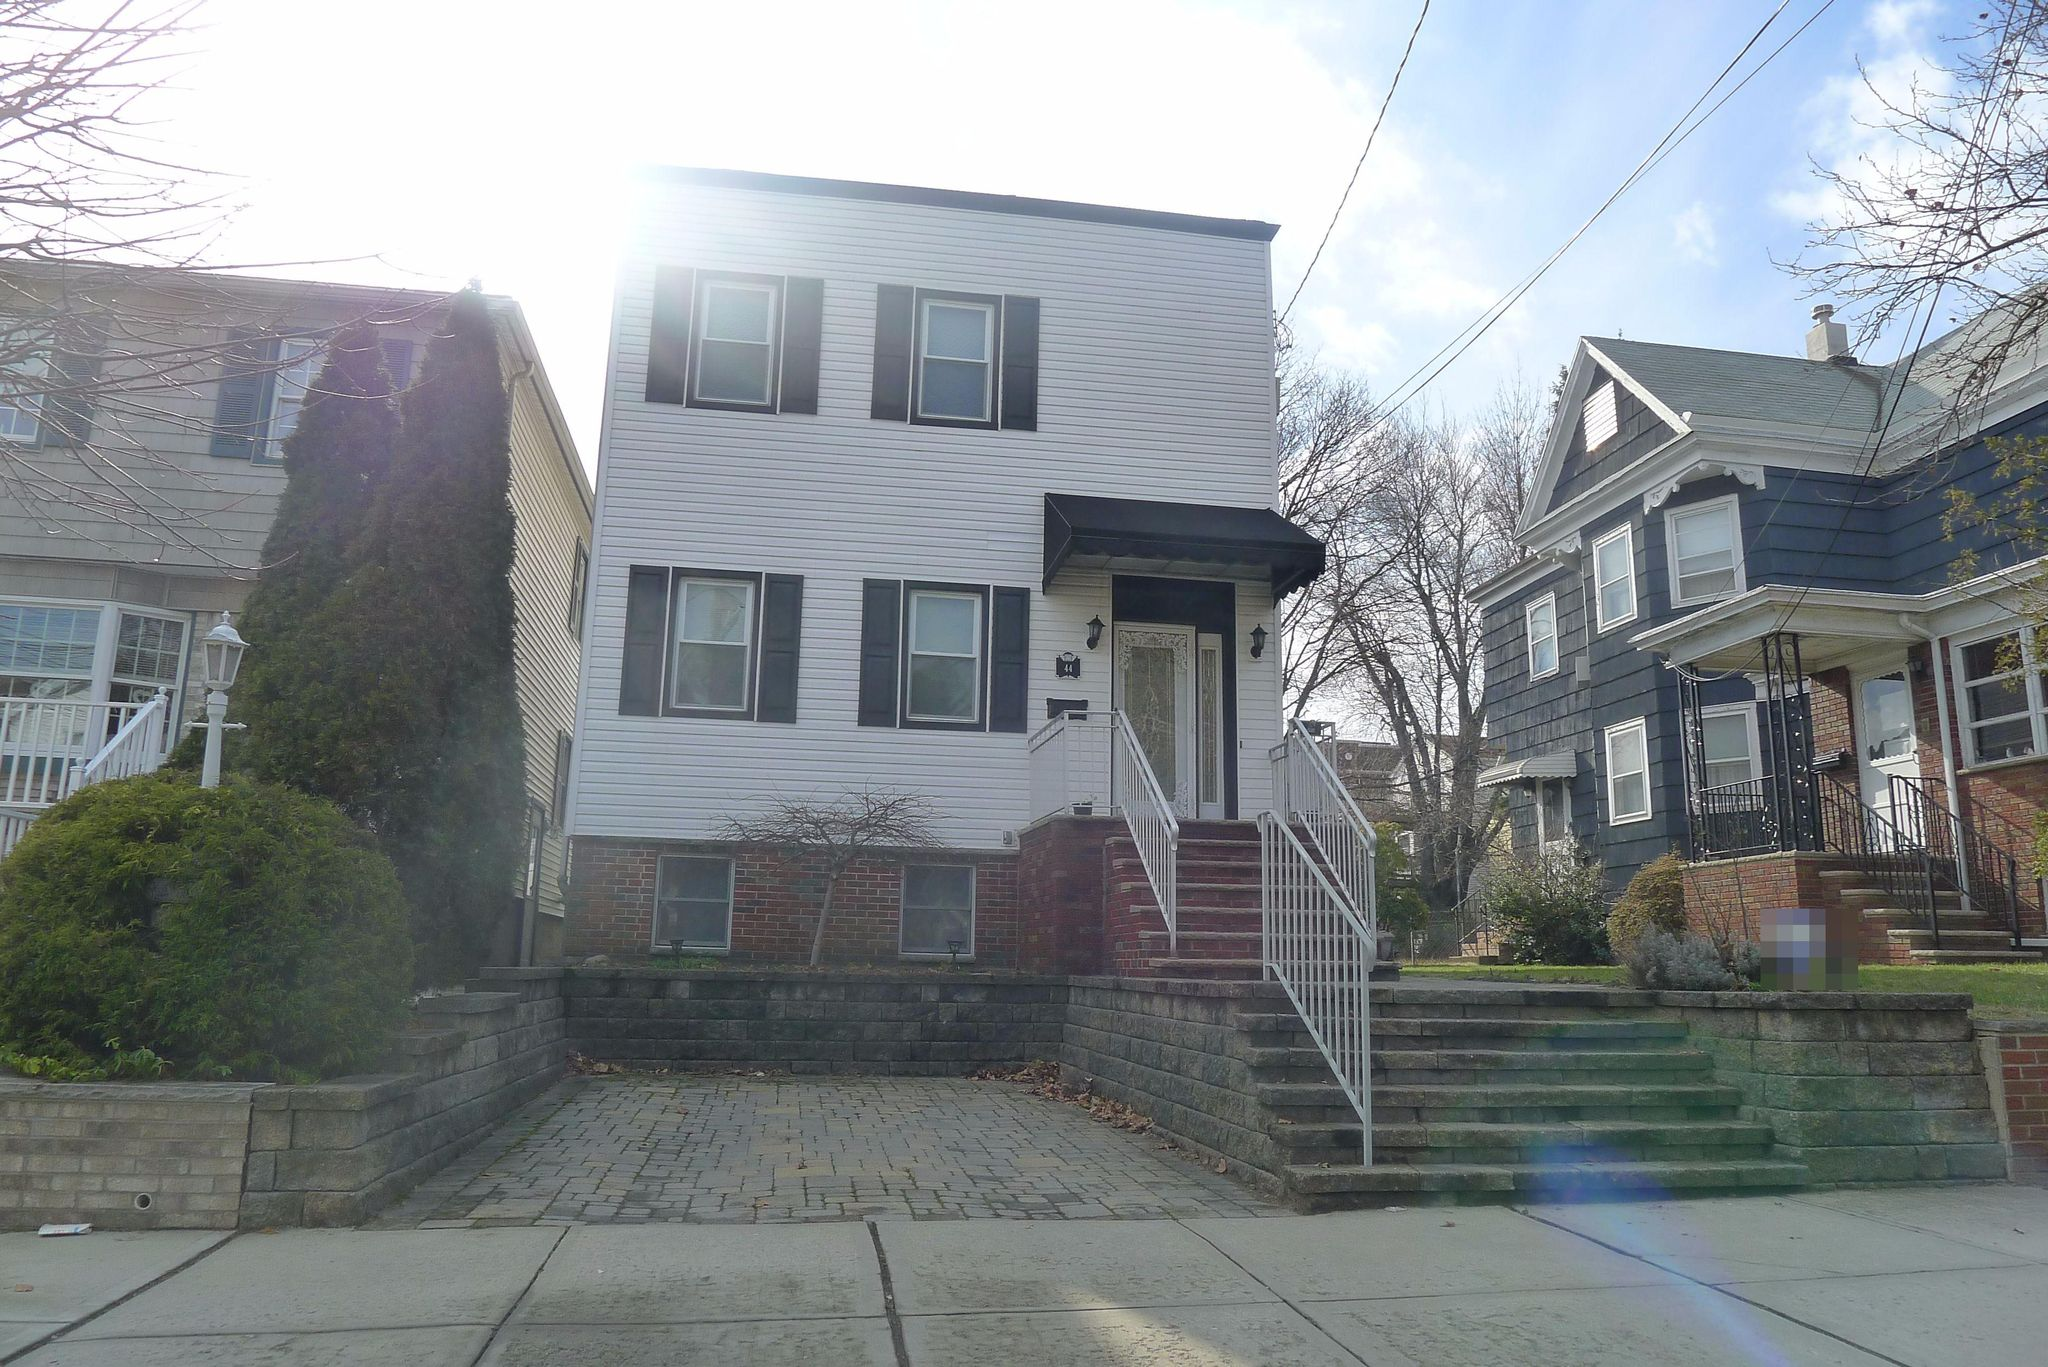 44 W 44th St Bayonne NJ Estimate and Home Details